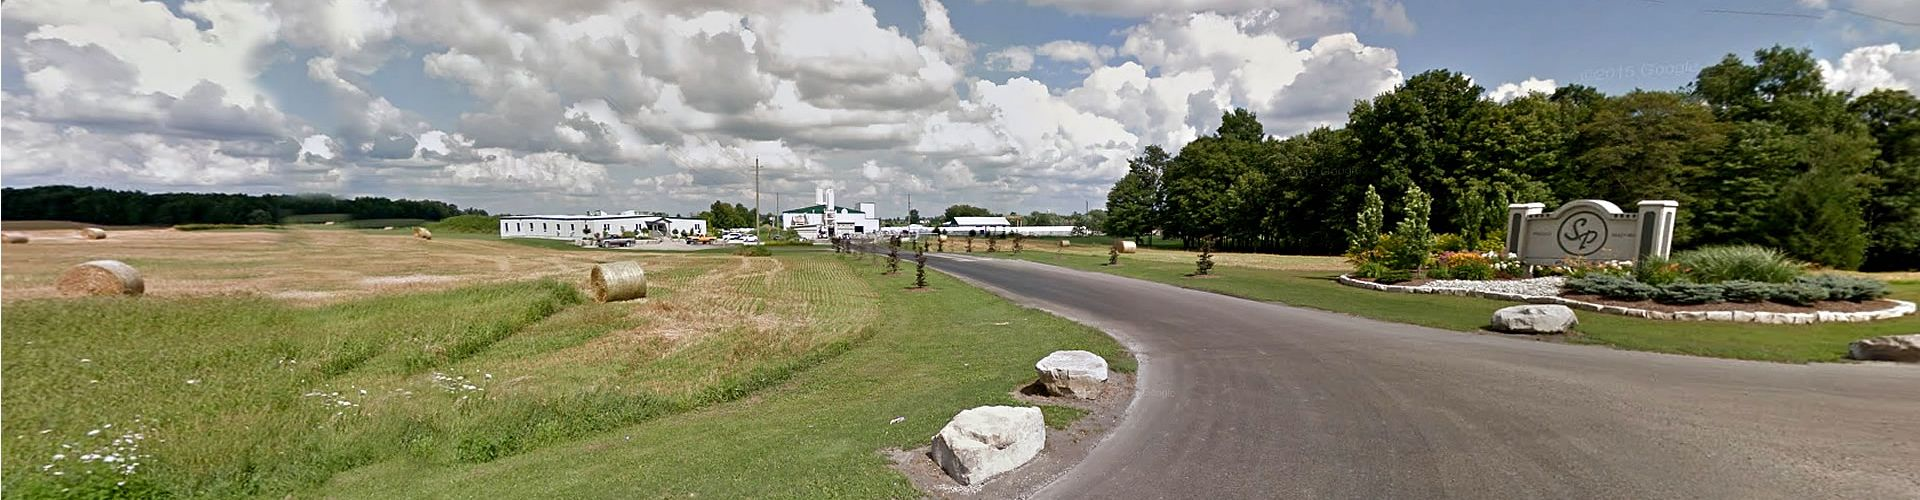 Streetview of Stubbes Harley, ON